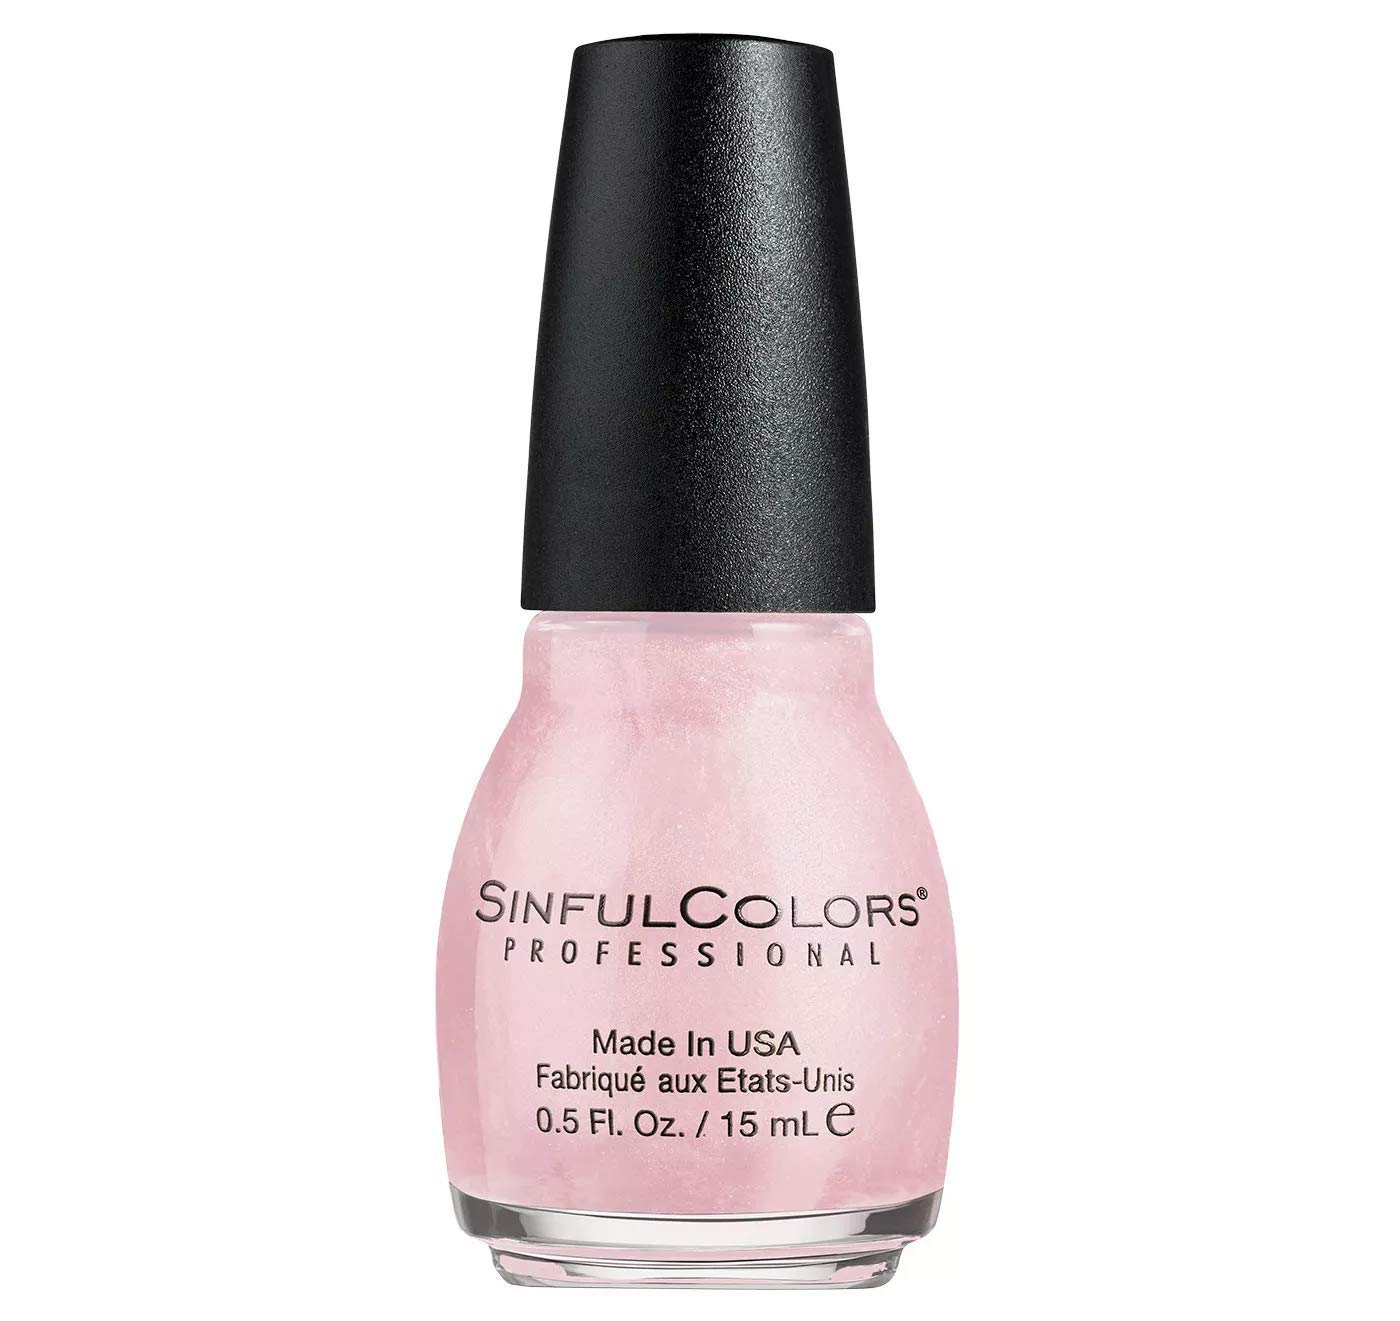 Sinful Colors Professional Nail Polish The Full Monte (Nude Hue) #2192 0.5 Fl Oz